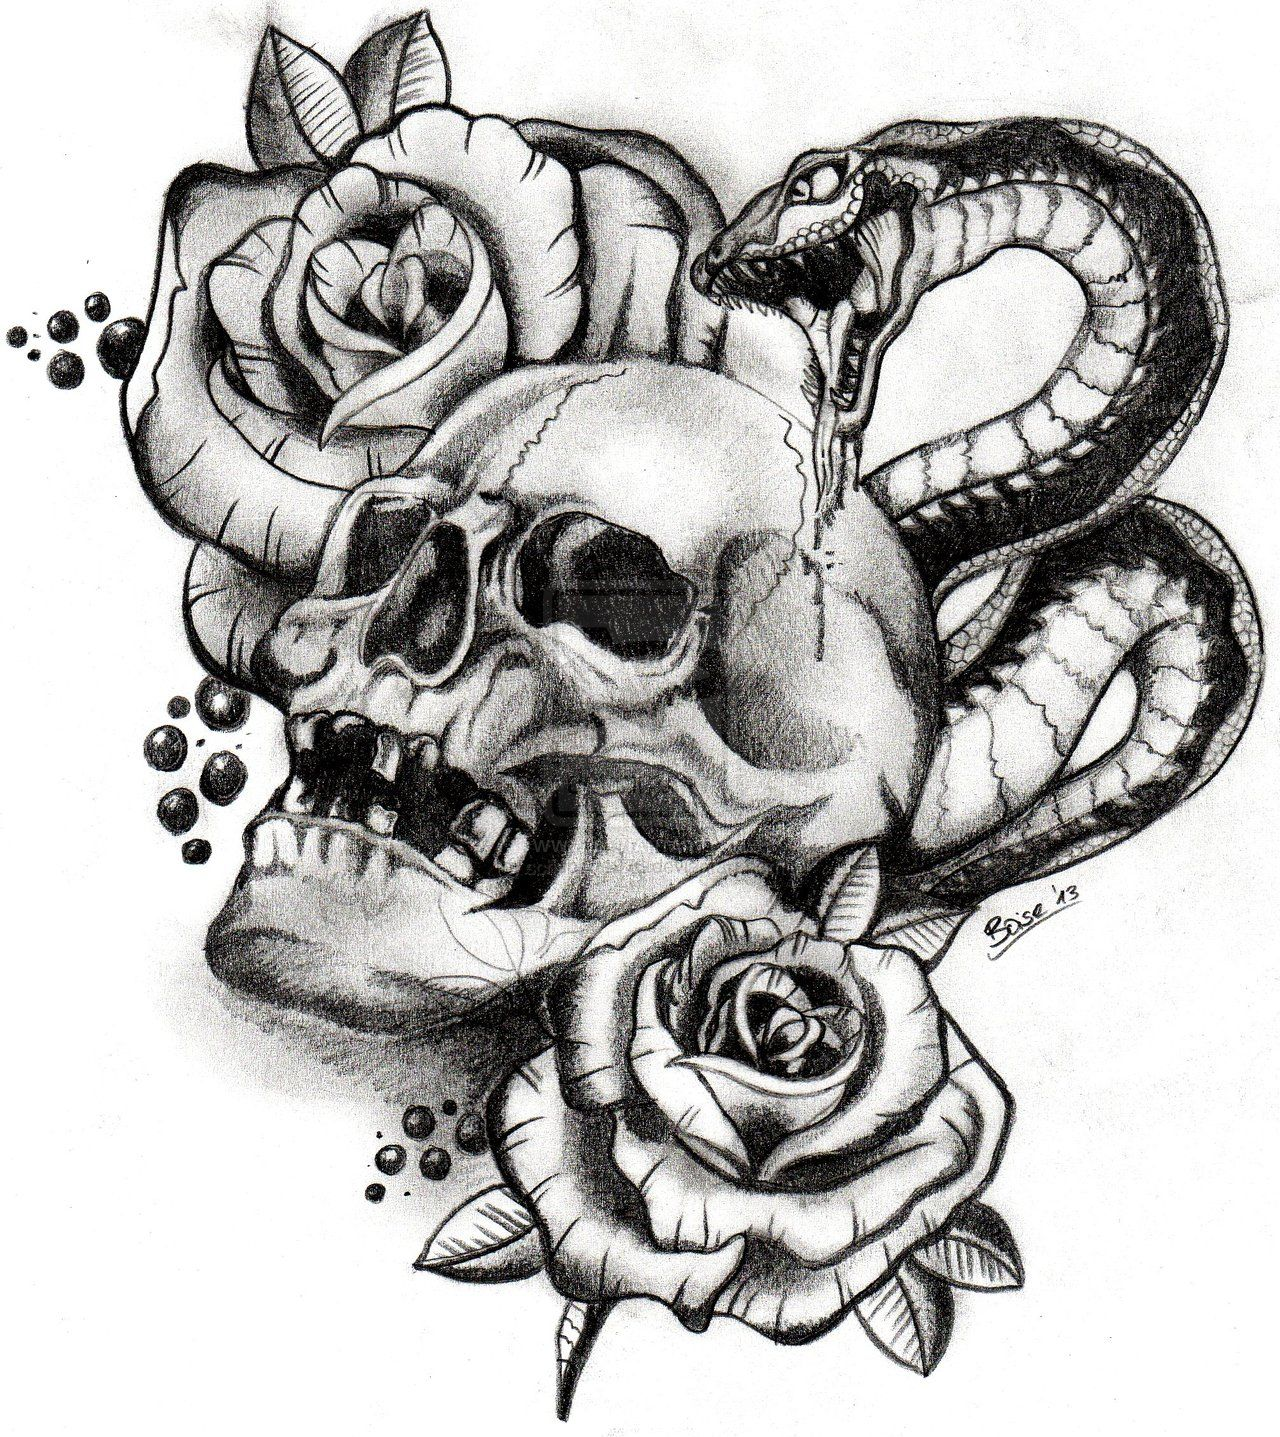 Evil skull Drawings with gun skull and snake by boise by